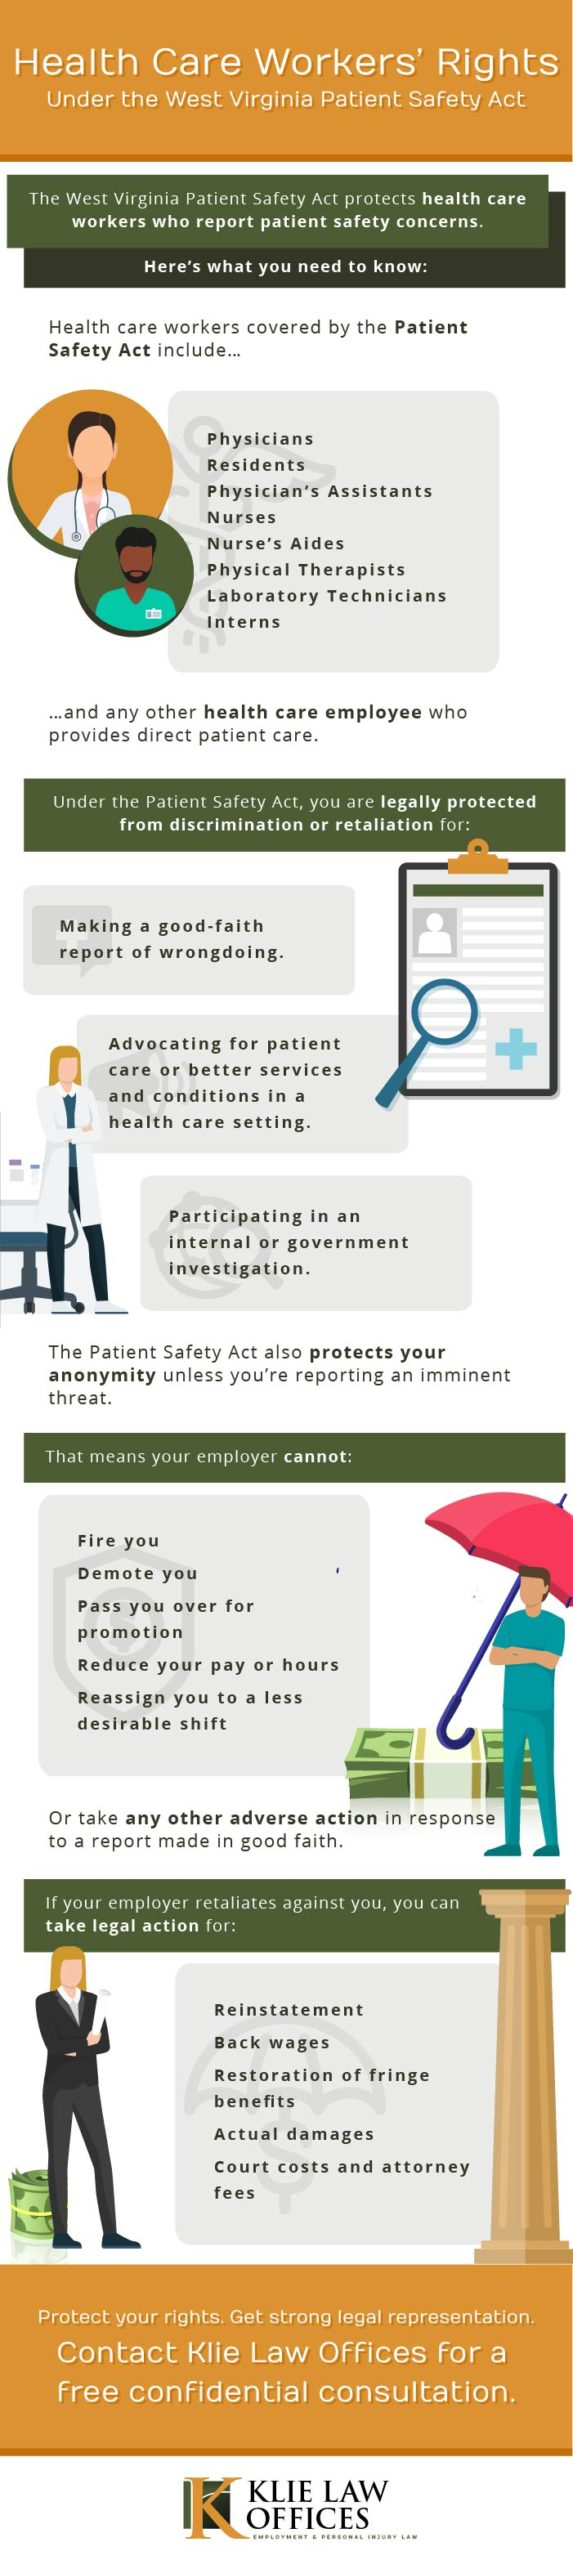 Health Care Workers Rights infographic